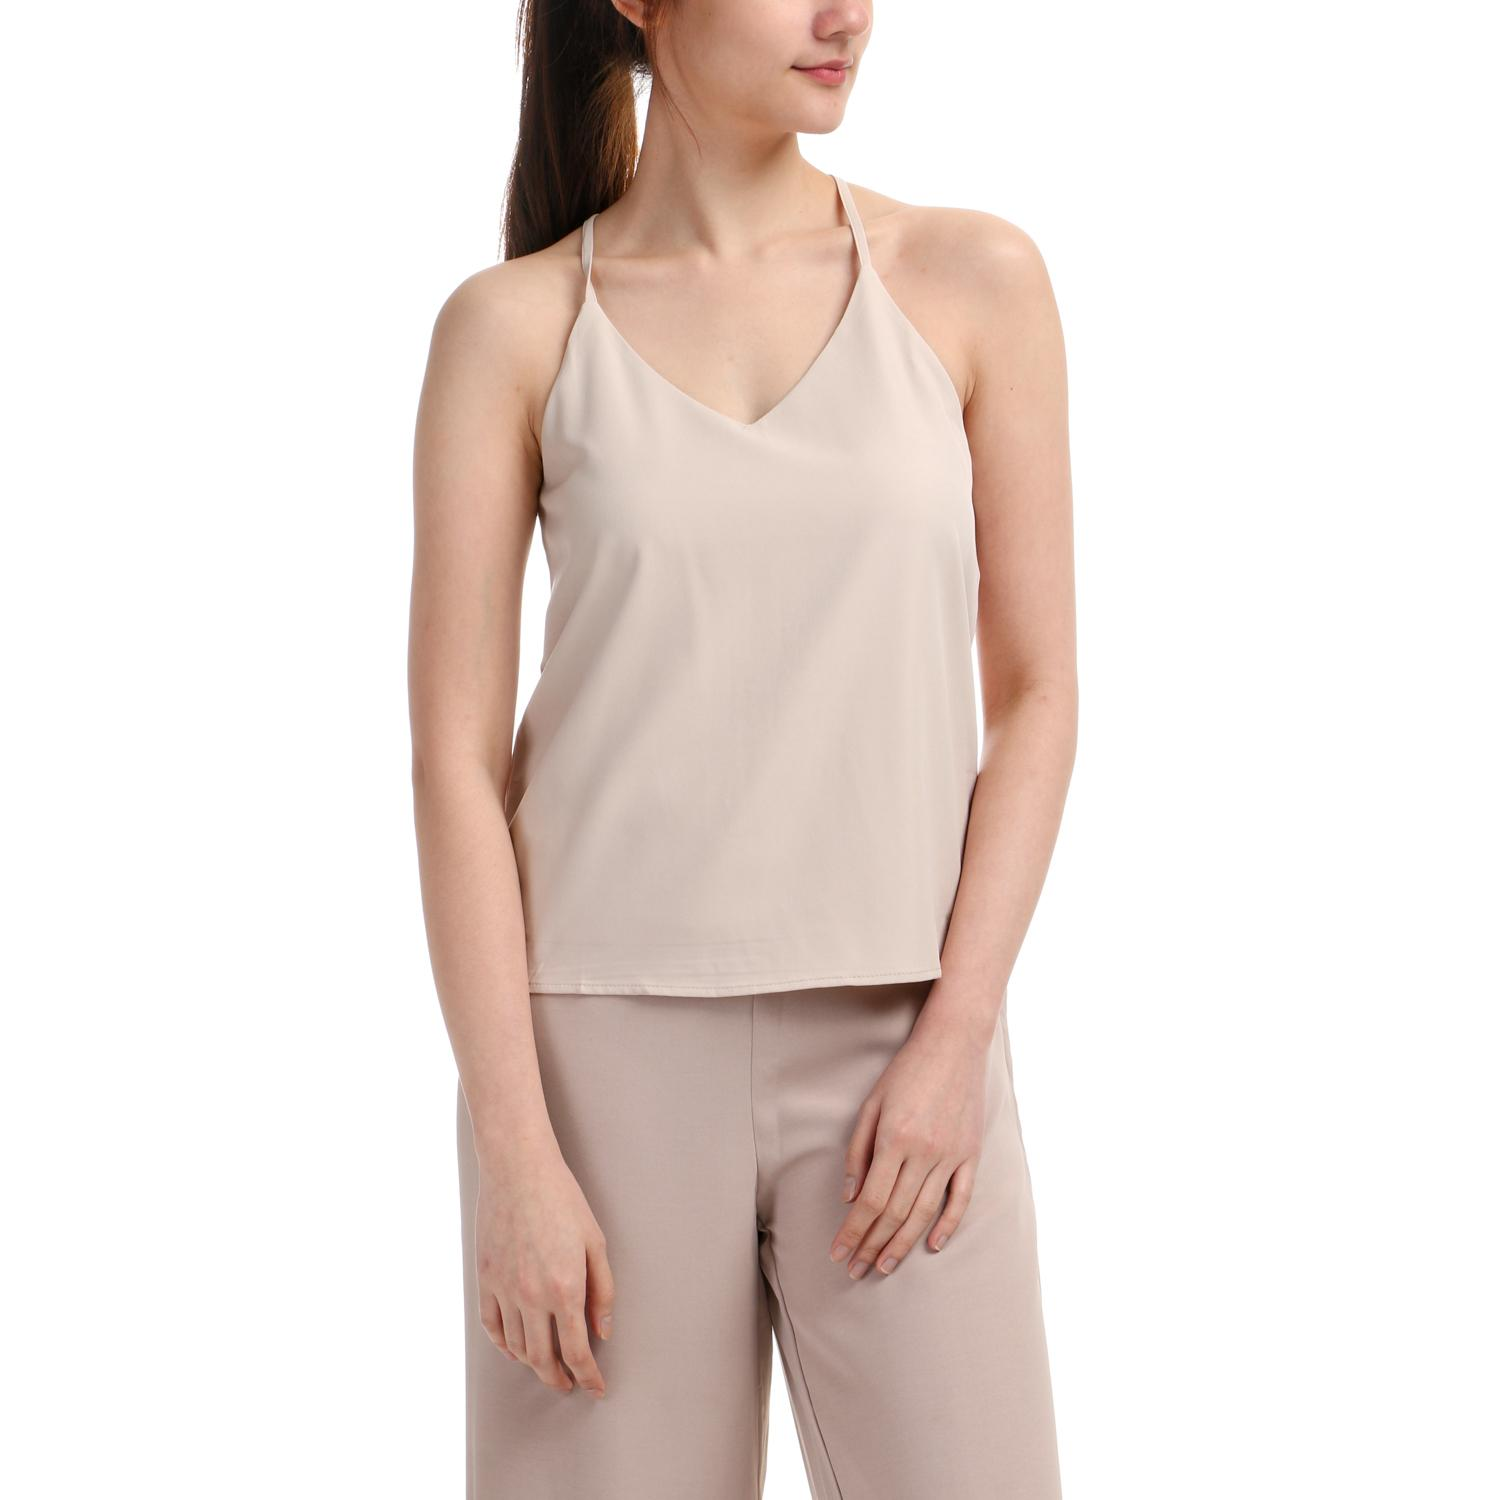 15295ad6c498 Tank Tops for Women for sale - Camisole for Women online brands ...